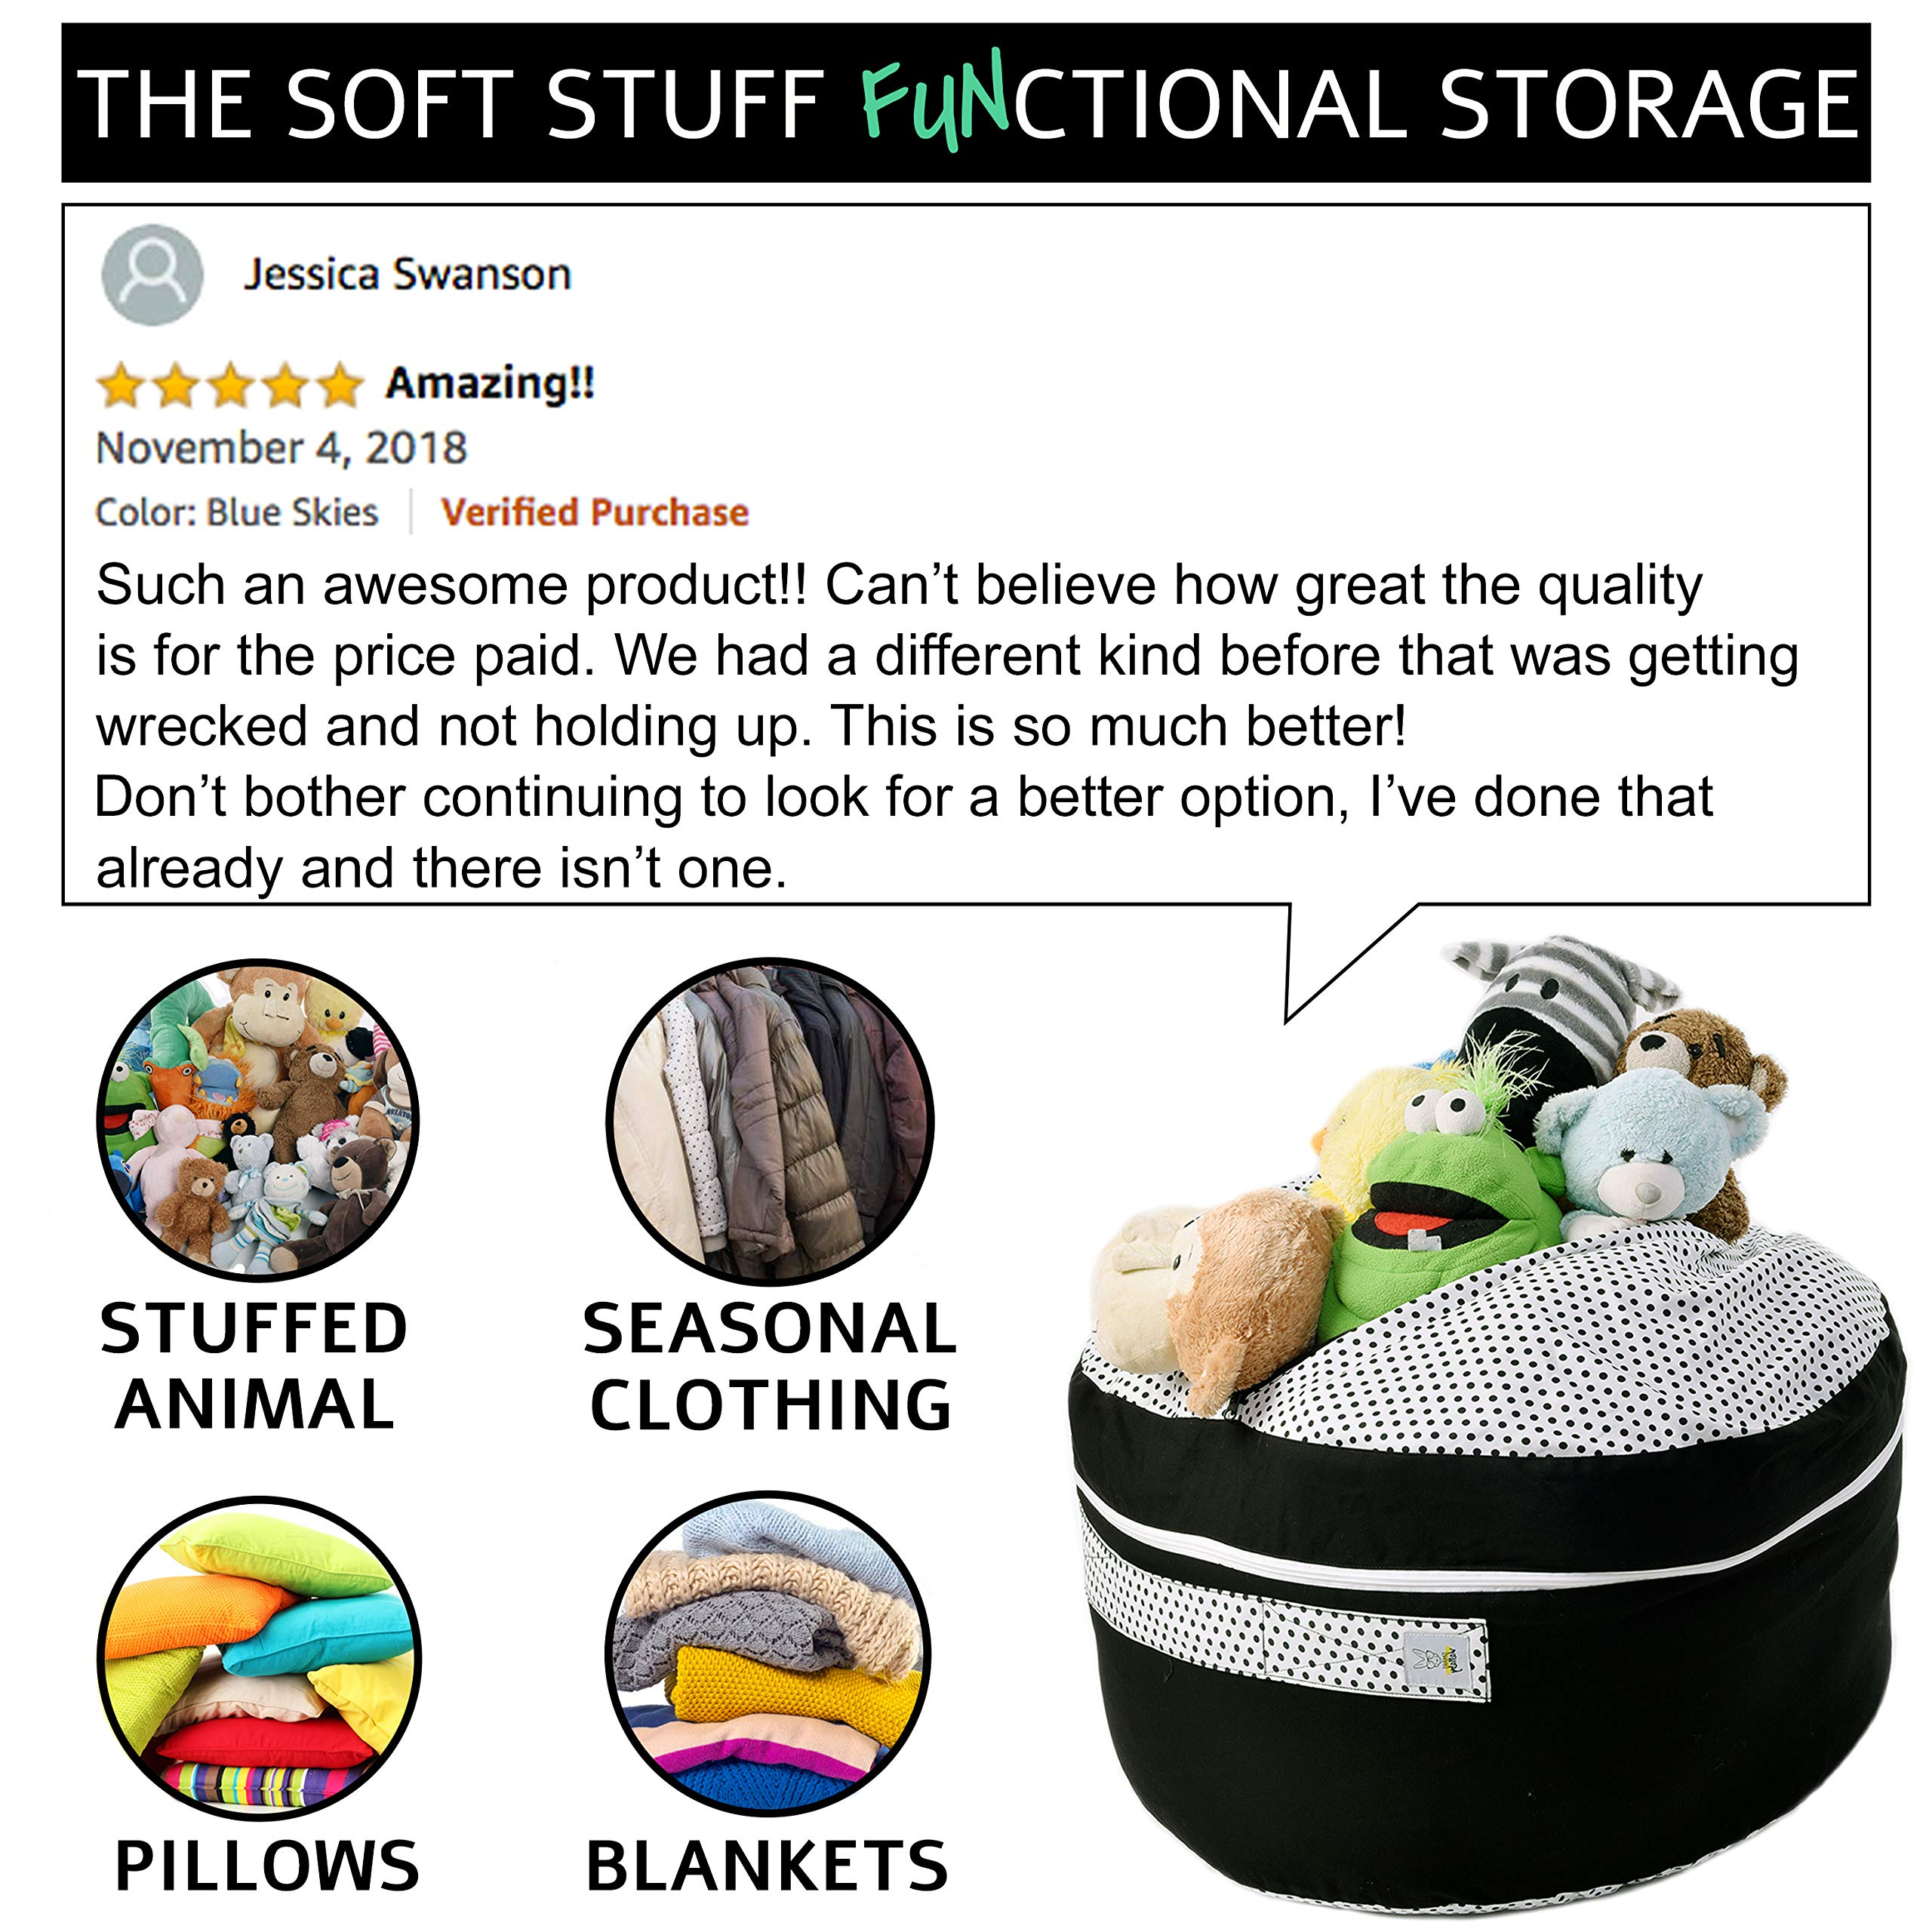 2 Sizes in 1 Large Bean bag Stuffed Animal Storage | XL Jumbo Ottoman for Soft Toys, Plush Toys | Giant Pouf Organizer for Linens, Quilts, Pillows | 300 L. / 80 Gal. | 42'' | Black & White by SMART WALLABY